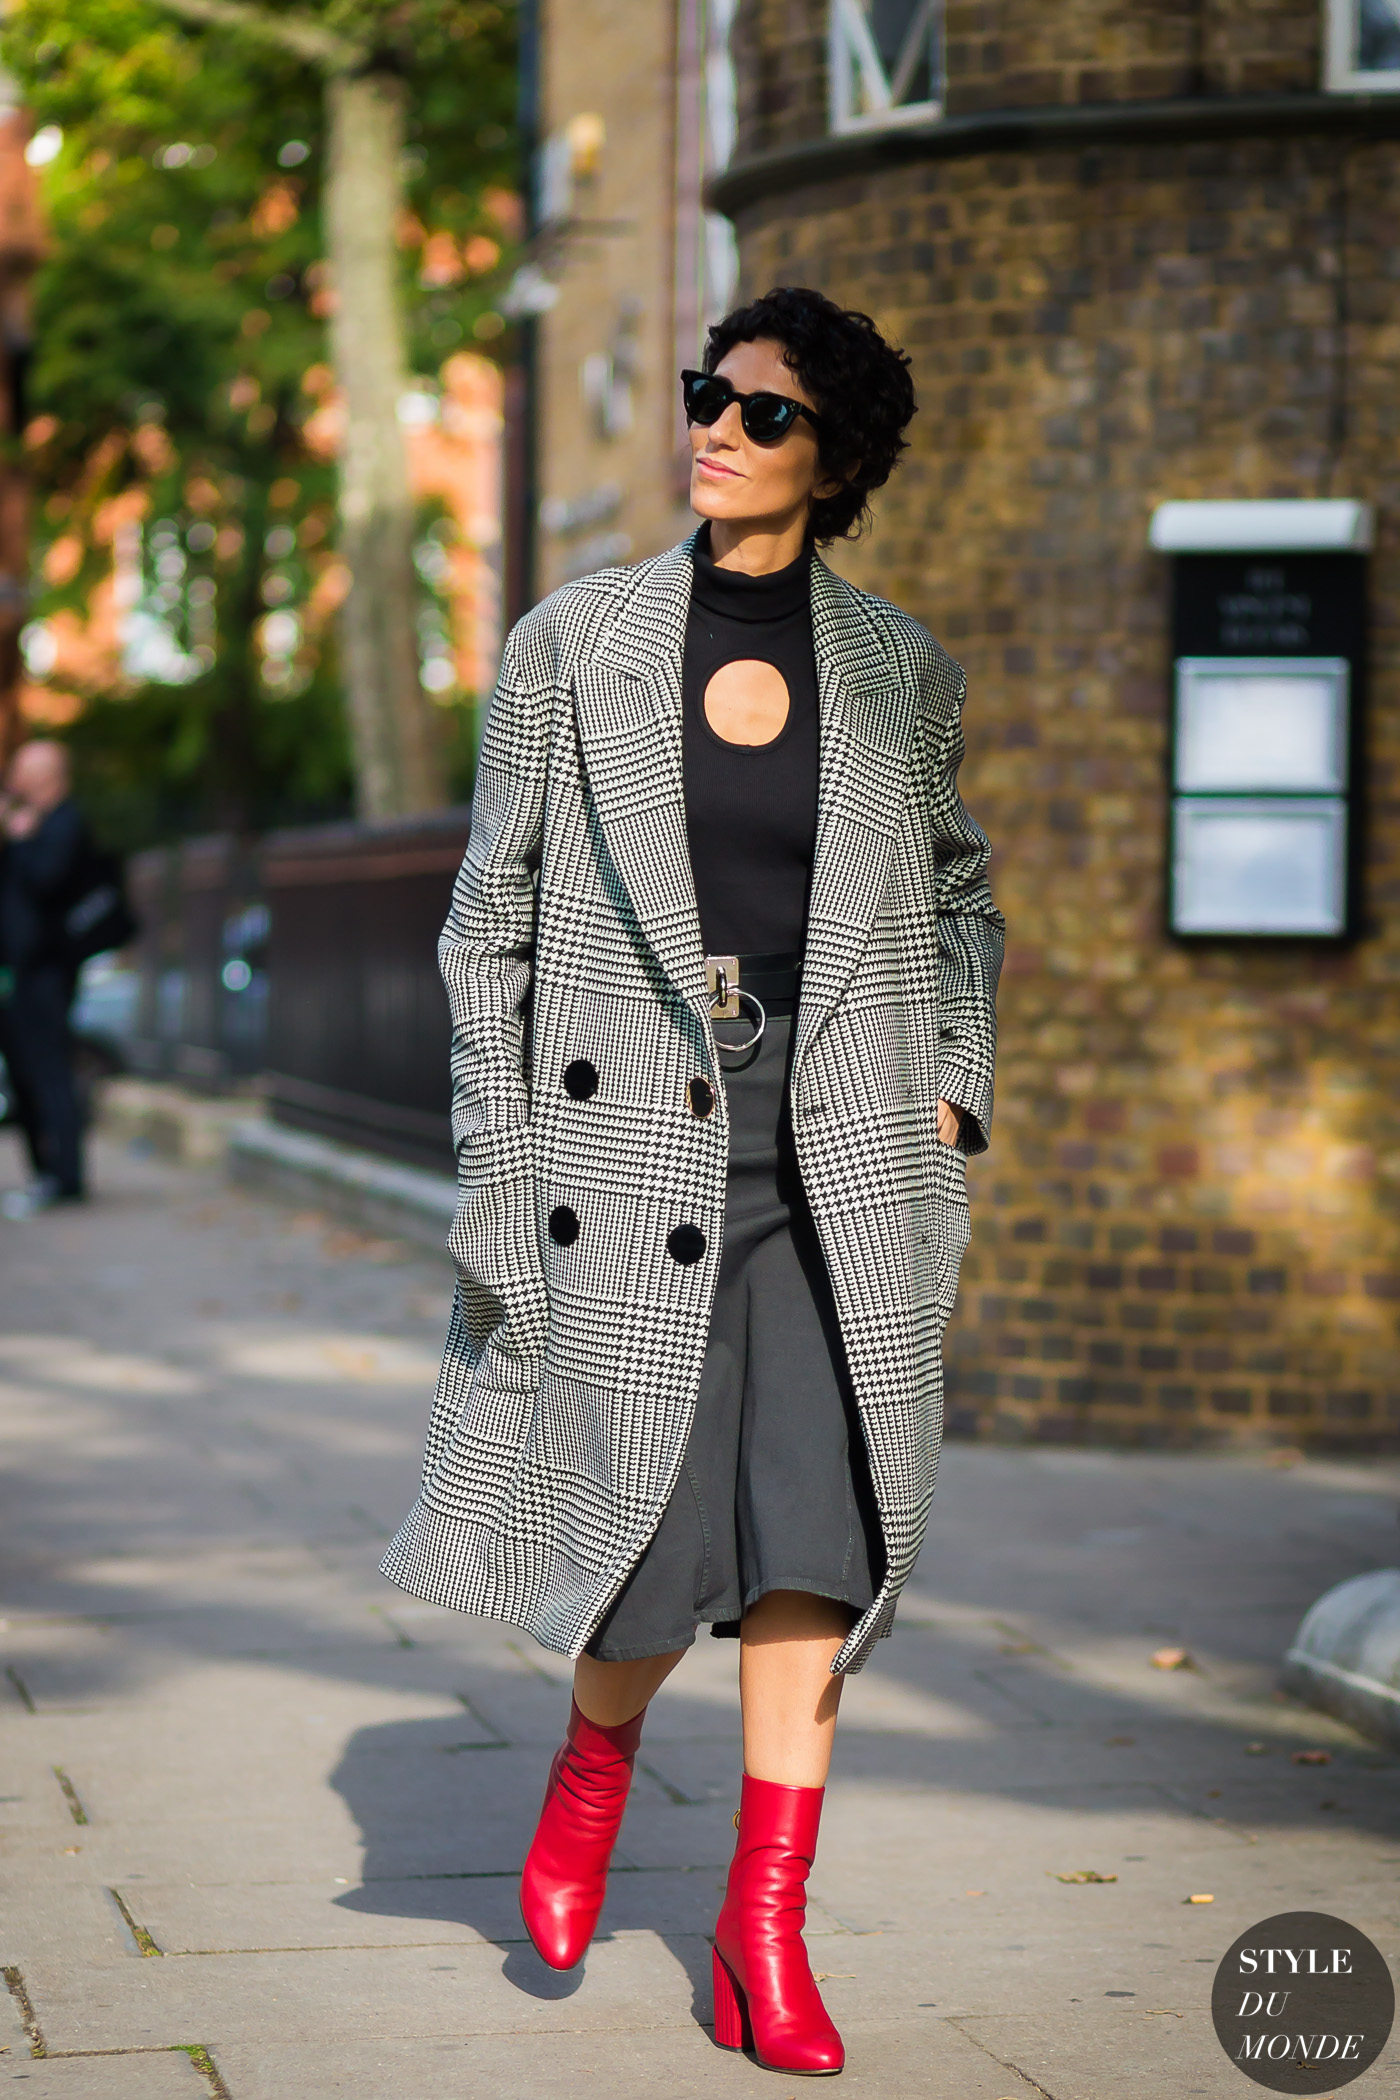 yasmin-sewell-by-styledumonde-street-style-fashion-photography